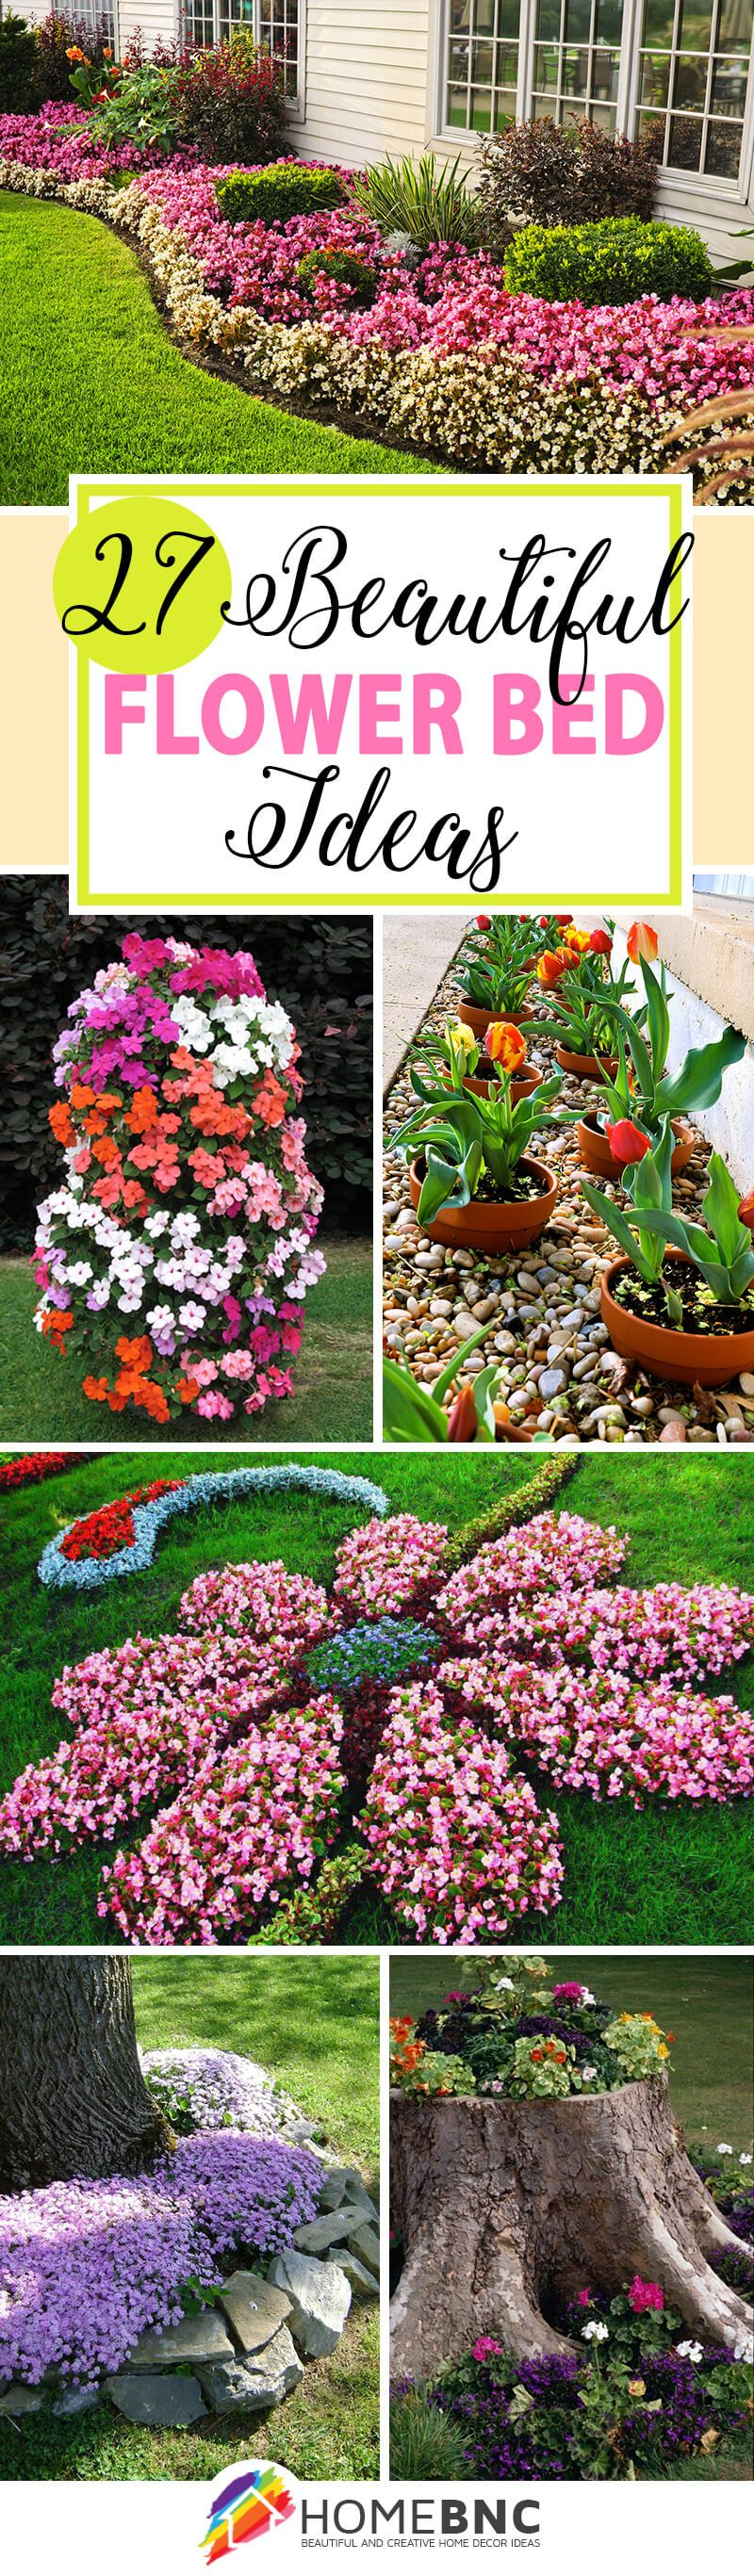 27 gorgeous and creative flower bed ideas to try flower for Flowers for flower bed ideas